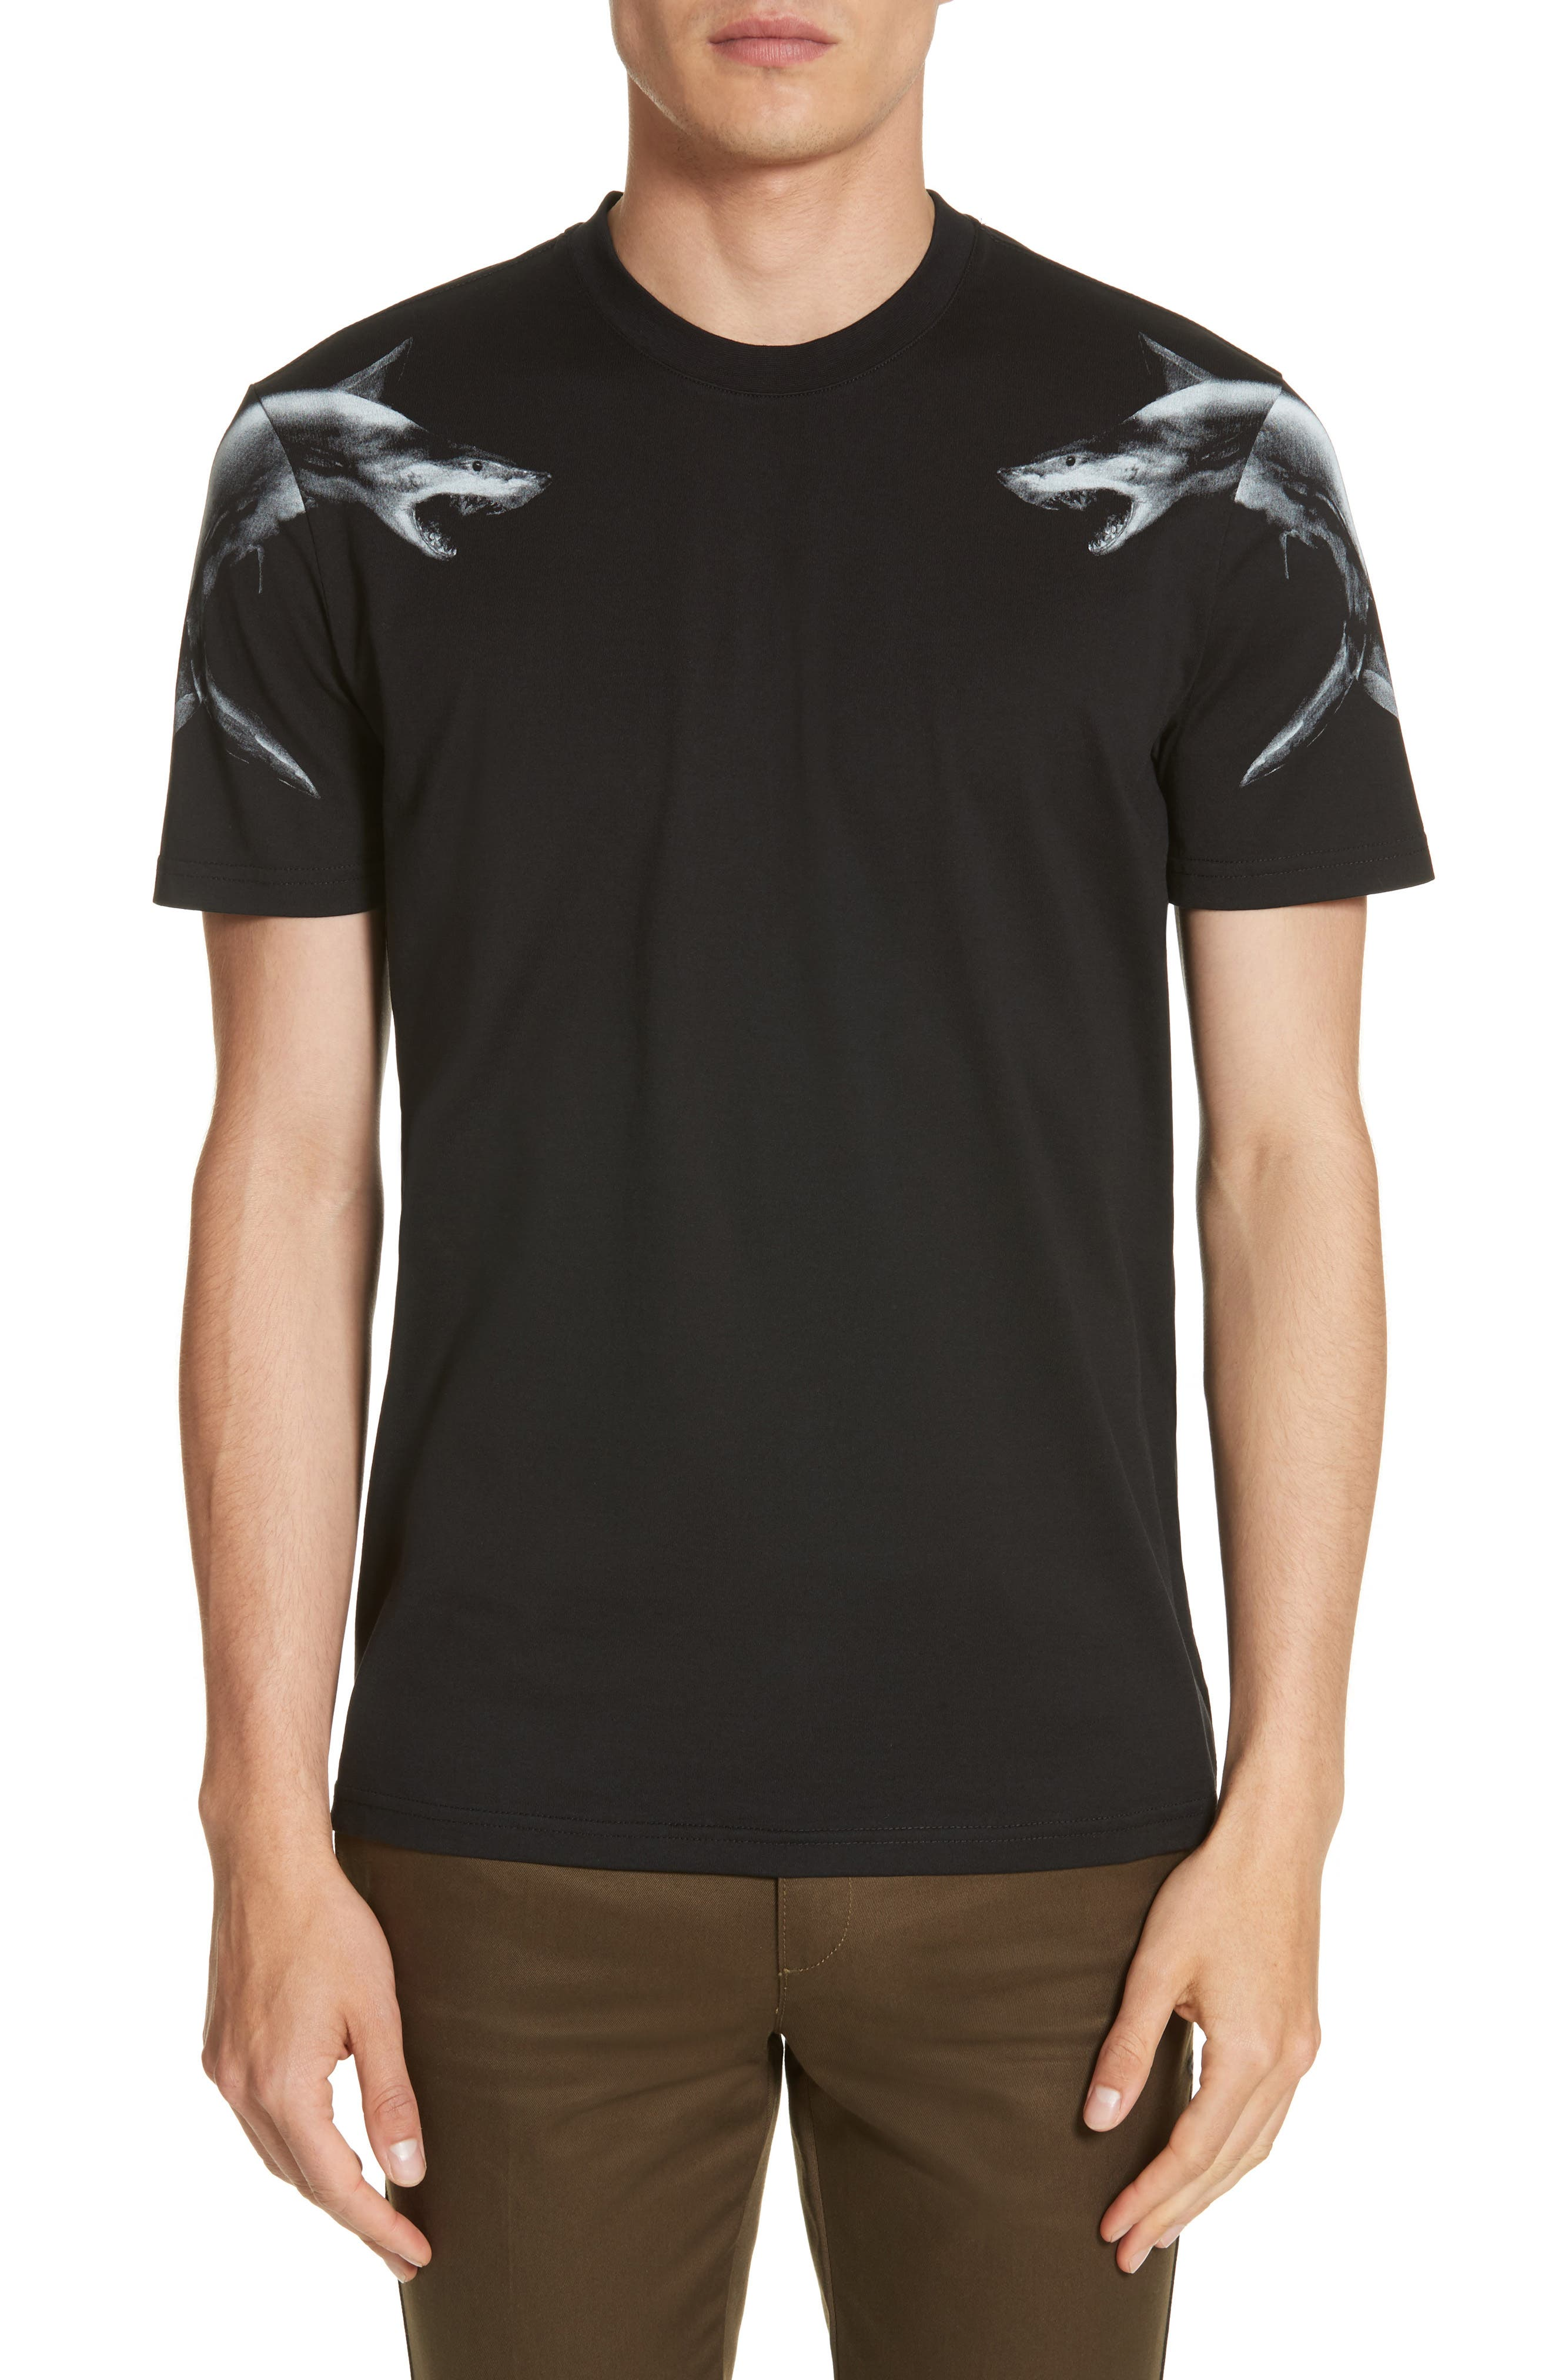 GIVENCHY Cuban Fit Graphic T-Shirt